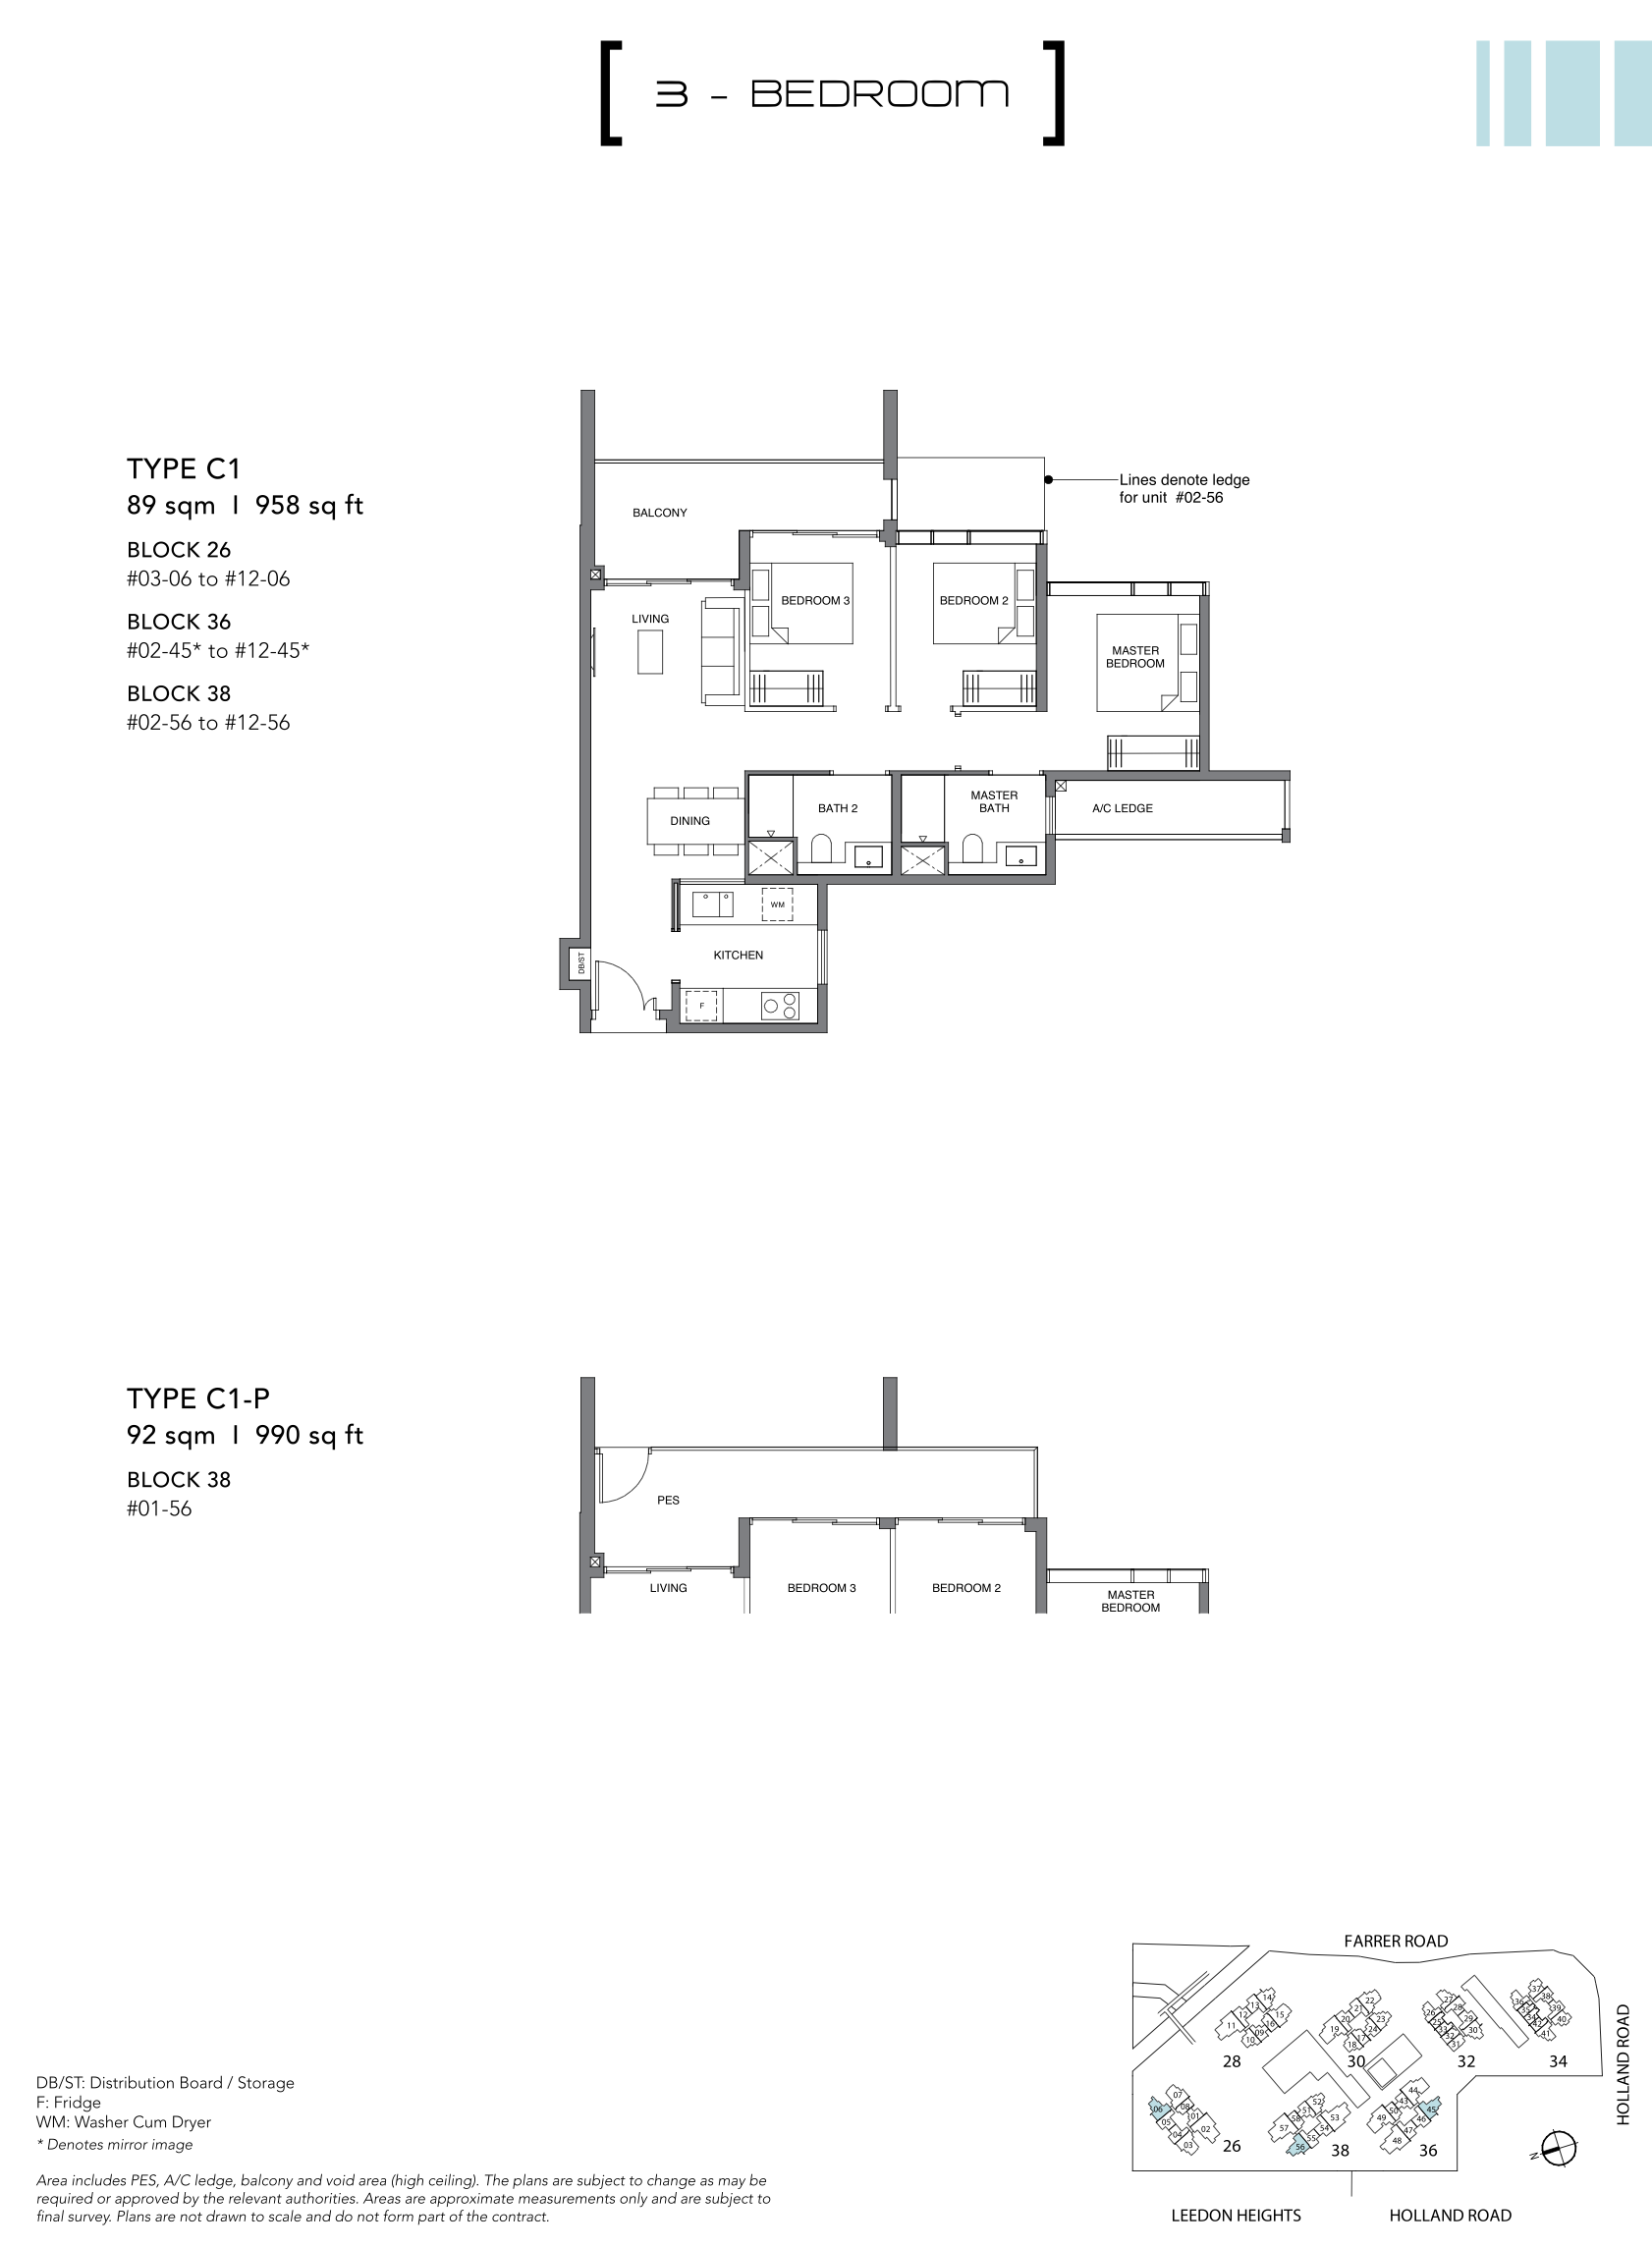 绿墩雅苑公寓户型图 Leedon Green floor plan 3 bedroom c1